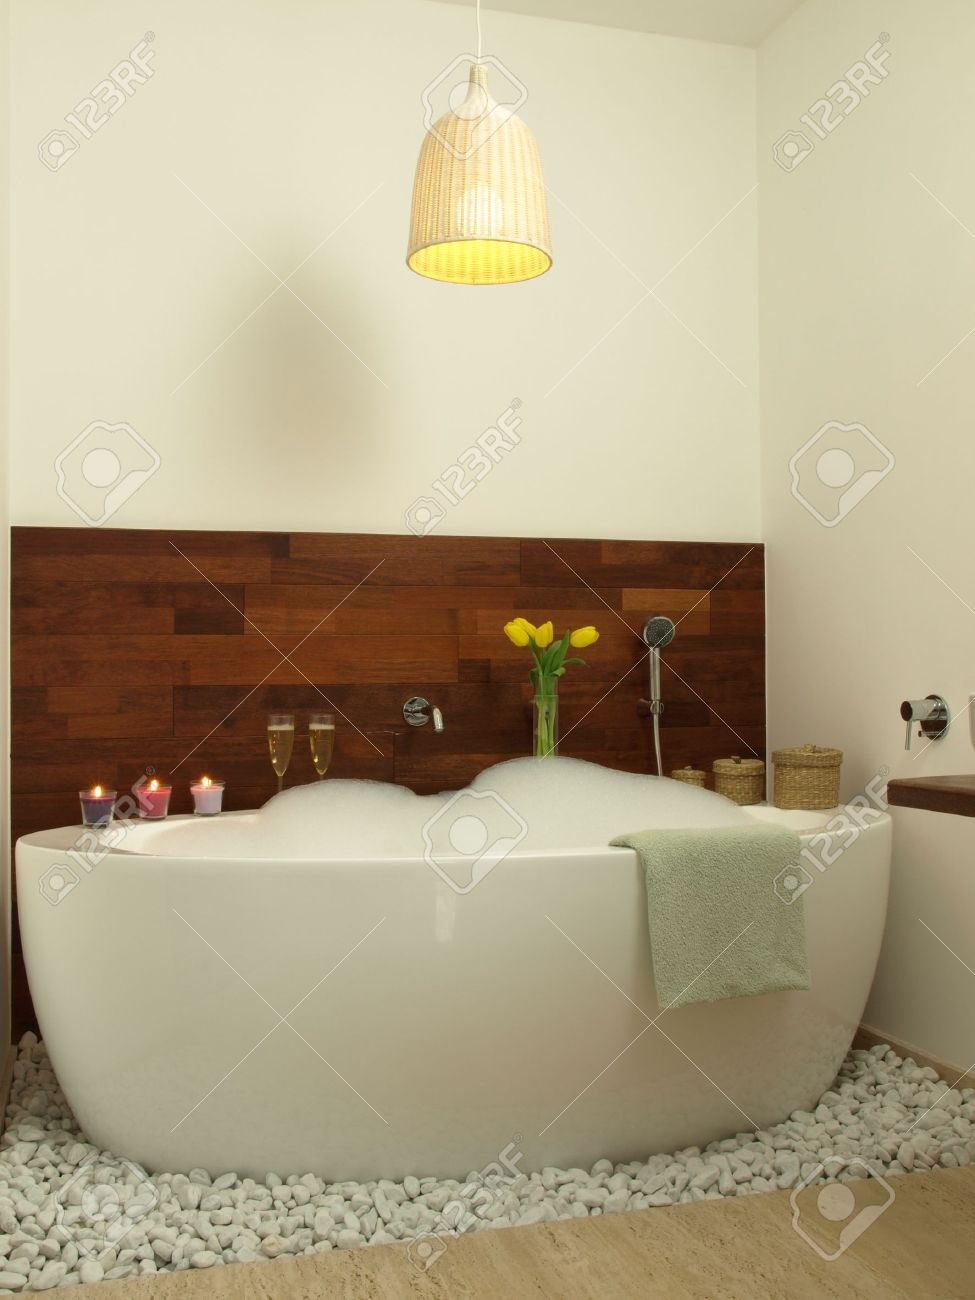 Romantic Bath With Candles Champagne And Tulips Stock Photo - Candles for bathroom